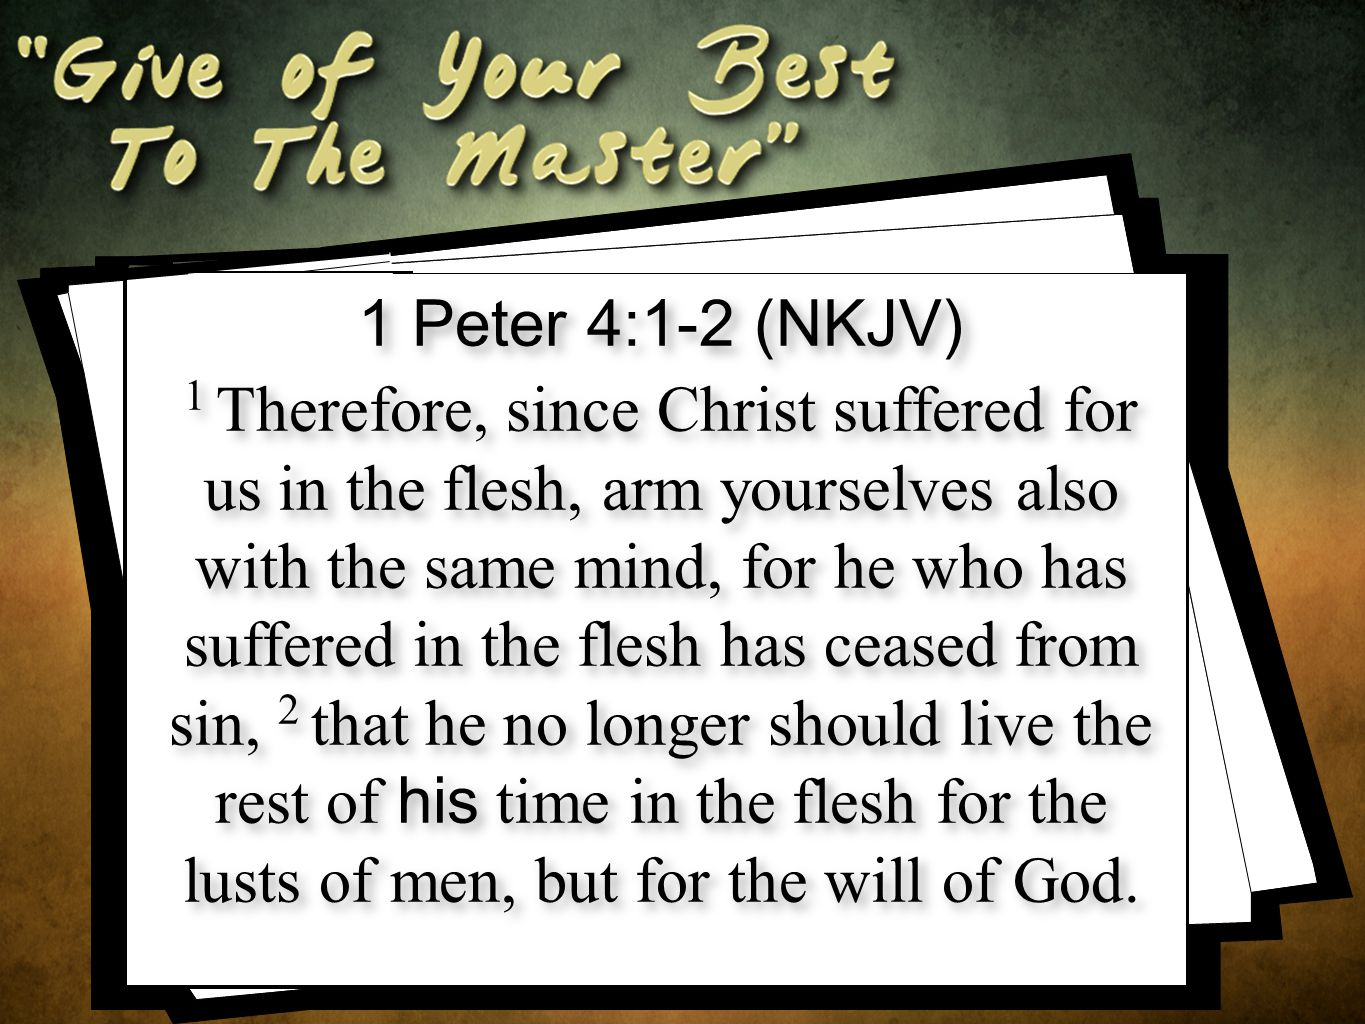 1 Peter 4:1-2 (NKJV) 1 Therefore, since Christ suffered for us in the flesh, arm yourselves also with the same mind, for he who has suffered in the flesh has ceased from sin, 2 that he no longer should live the rest of his time in the flesh for the lusts of men, but for the will of God.